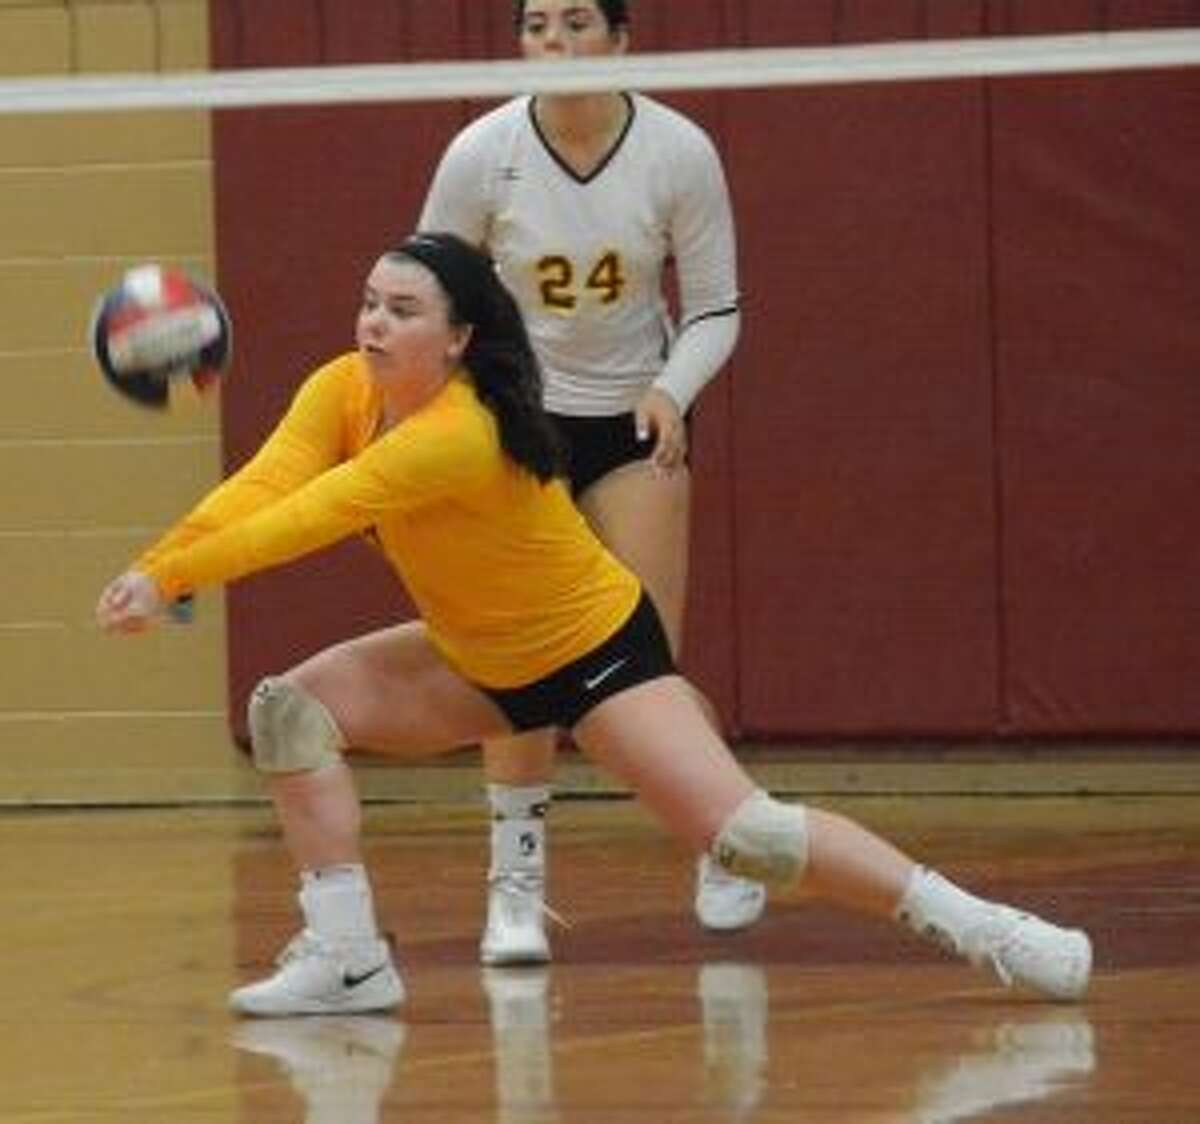 Kaitlin Capobianco was a defensive stalwart for St. Joseph.